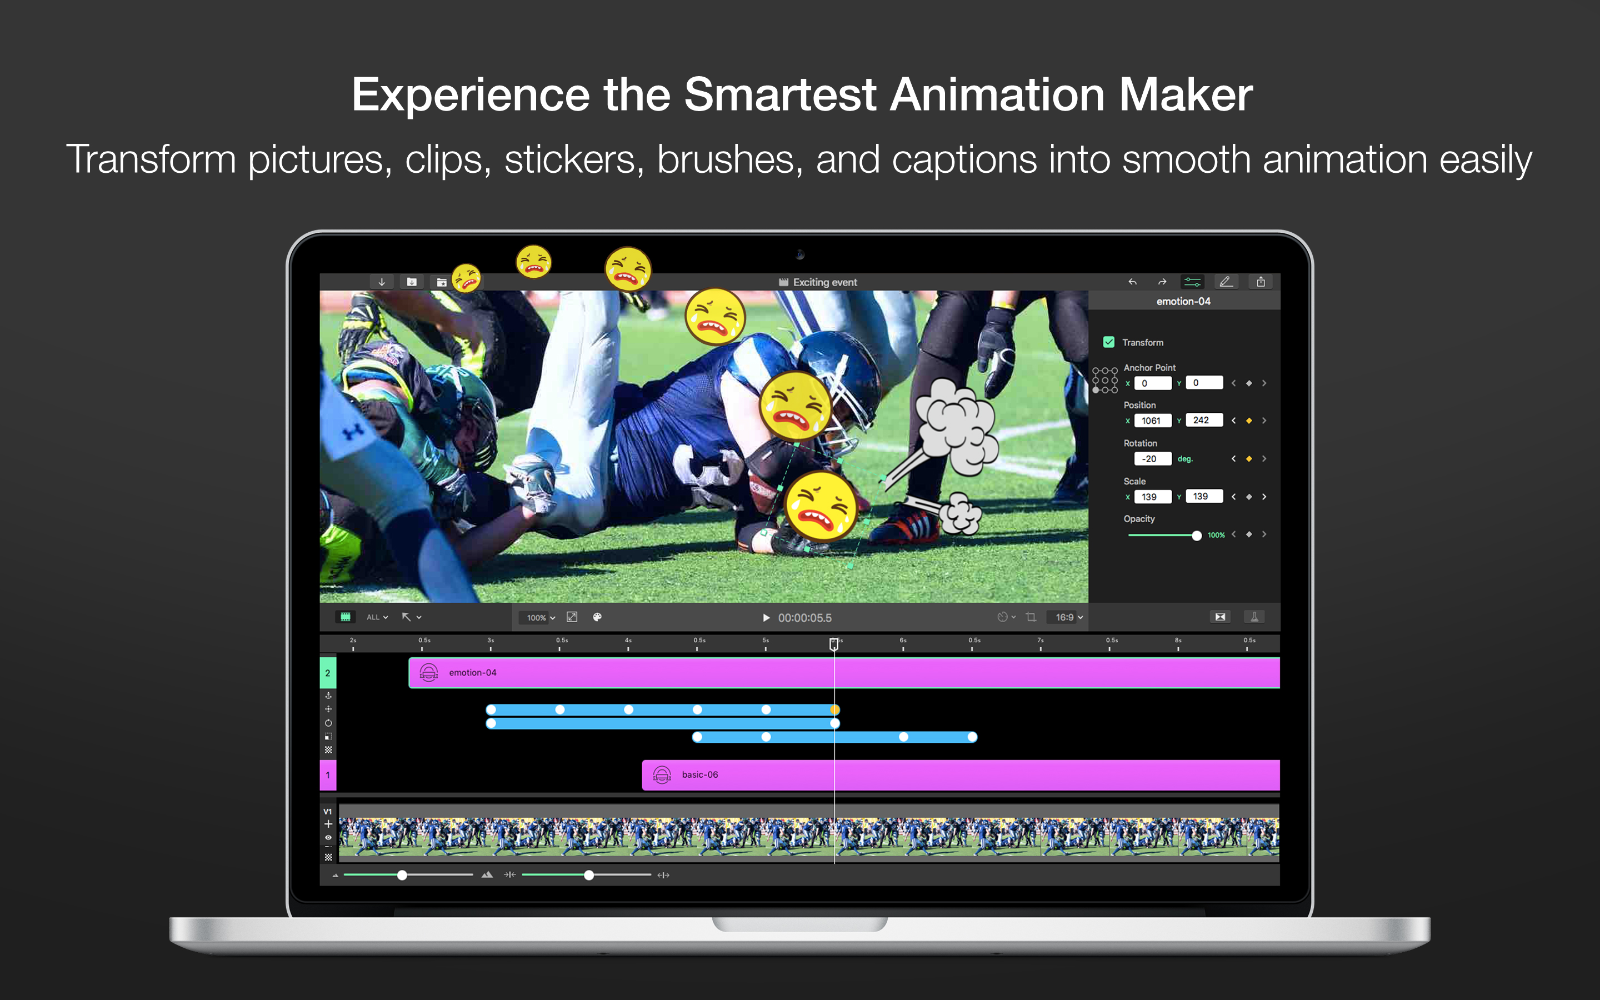 Experience the Smartest Animation Maker